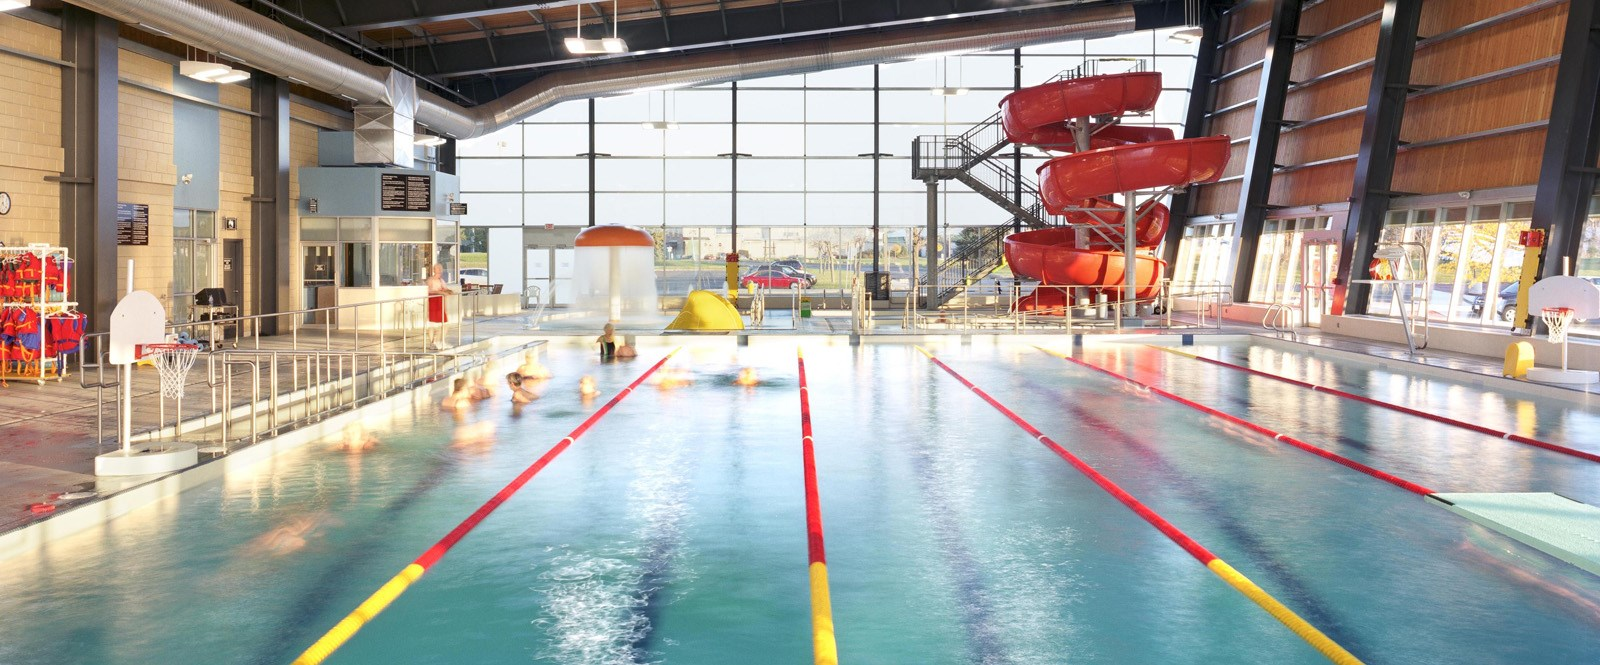 View of inside of Cornwall Aquatic Centre with children swimming on left edge of main pool